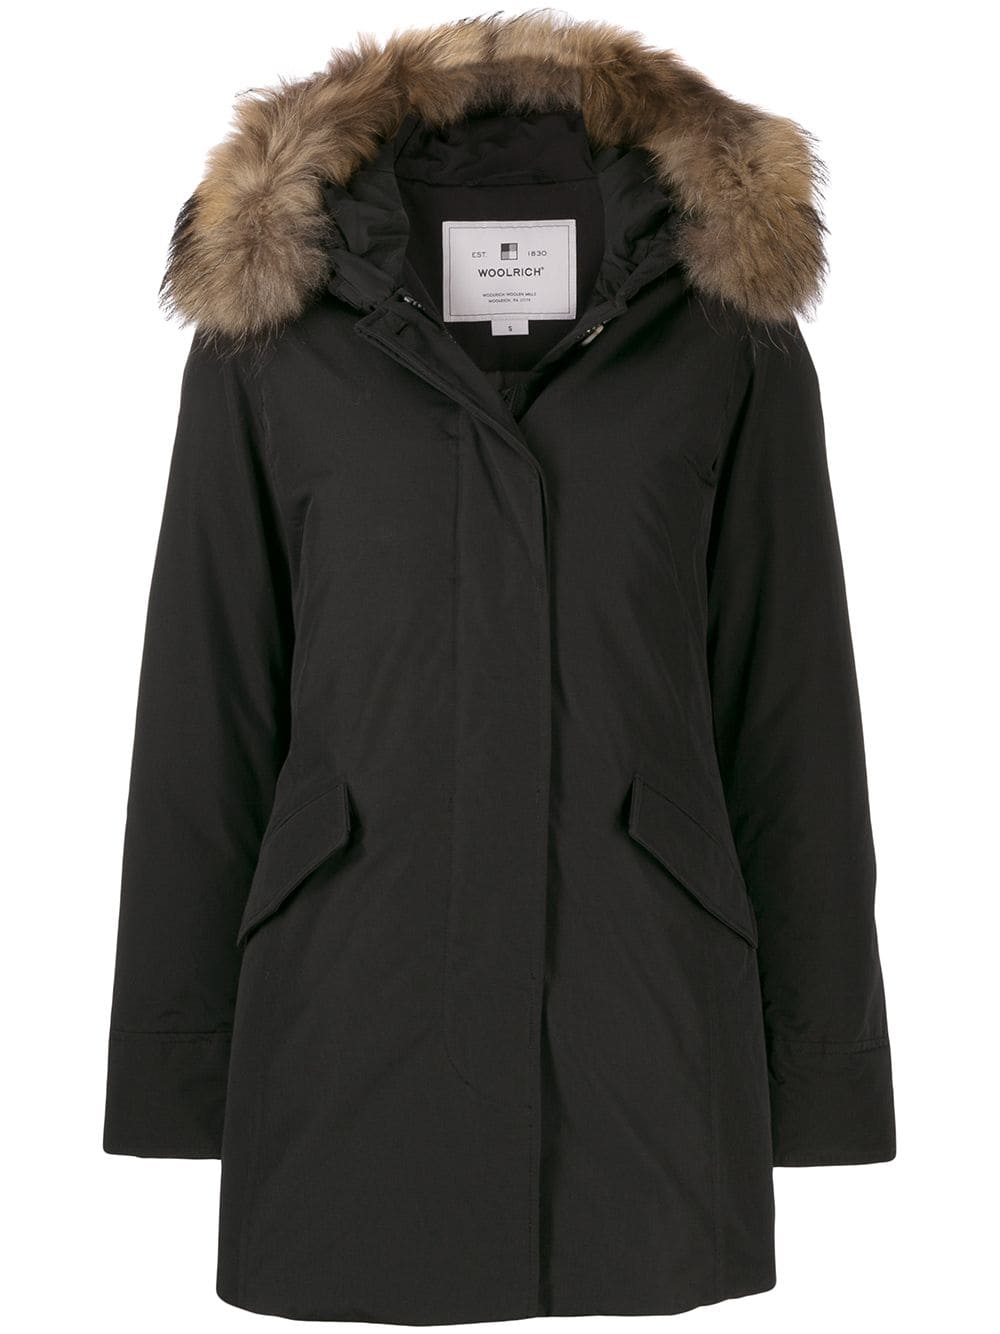 Photo of  Woolrich Arctic Parka Fur- shop Woolrich jackets online sales